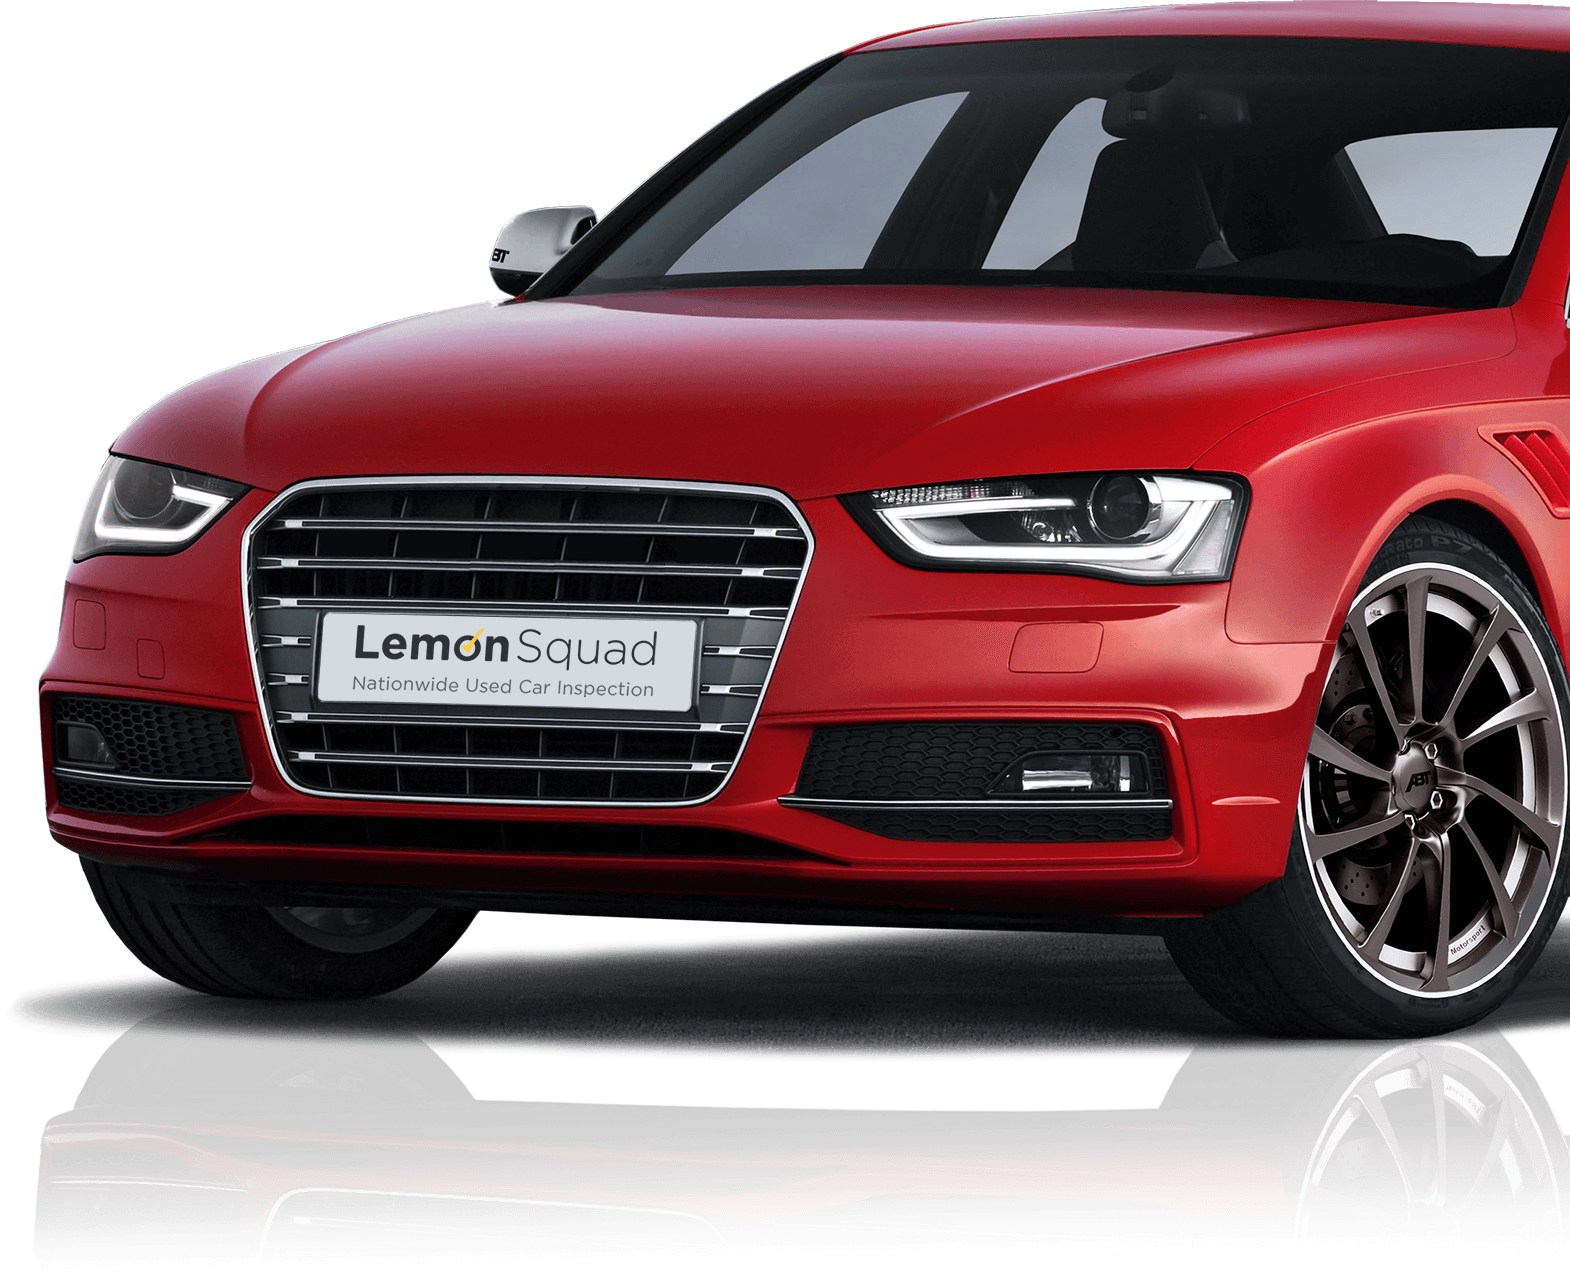 Used Cars Under $5000 Best Of Lemon Squad Nationwide Used Car Inspections